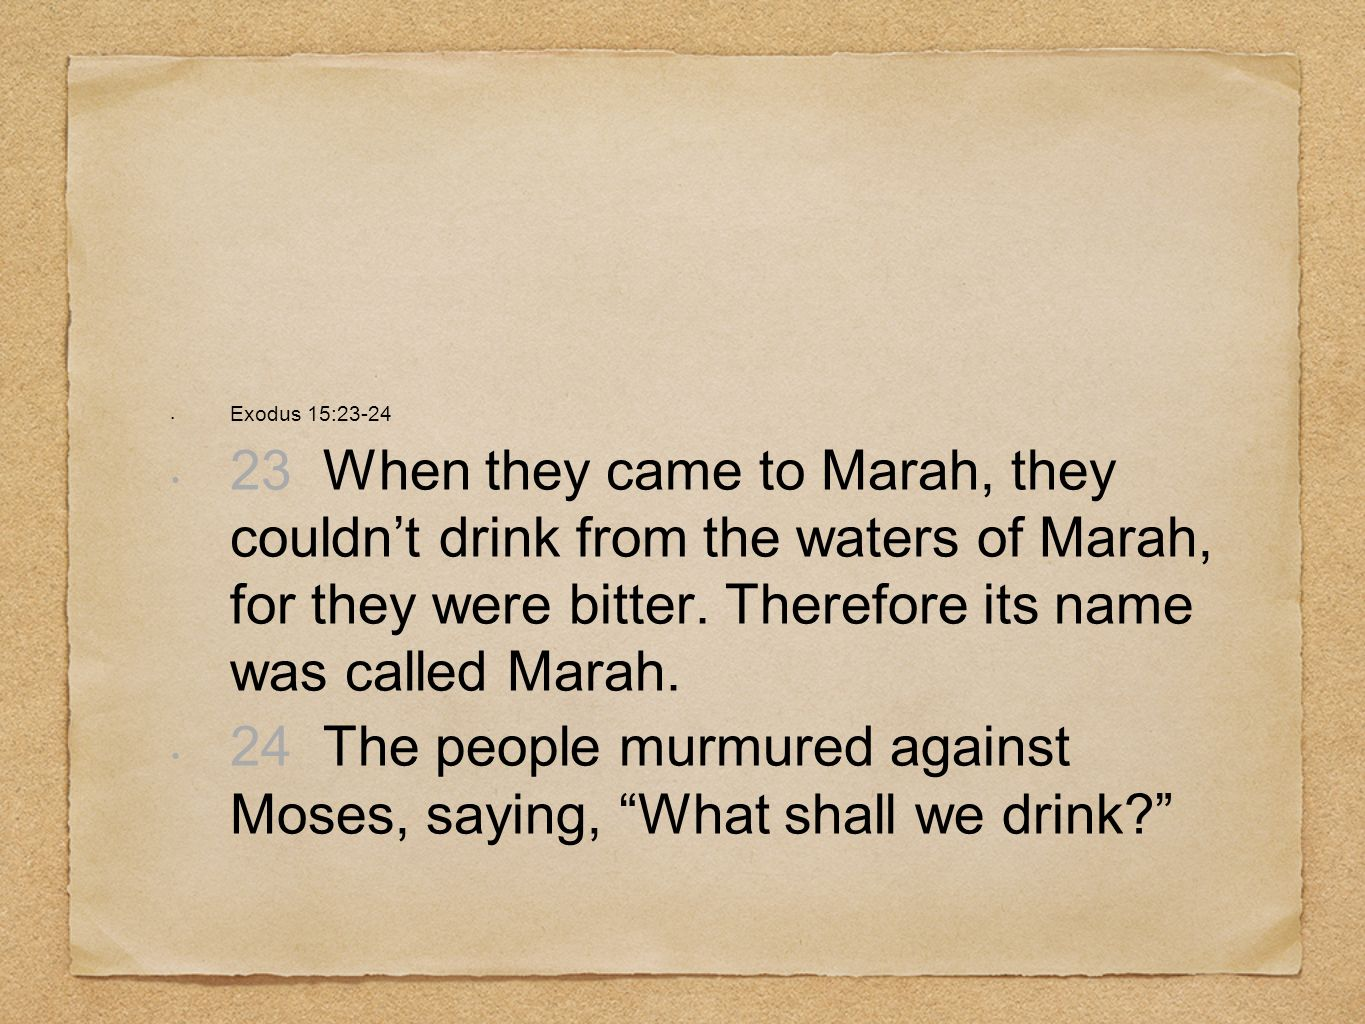 Exodus 15:23-24 23 When they came to Marah, they couldnt drink from the waters of Marah, for they were bitter. Therefore its name was called Marah. 24